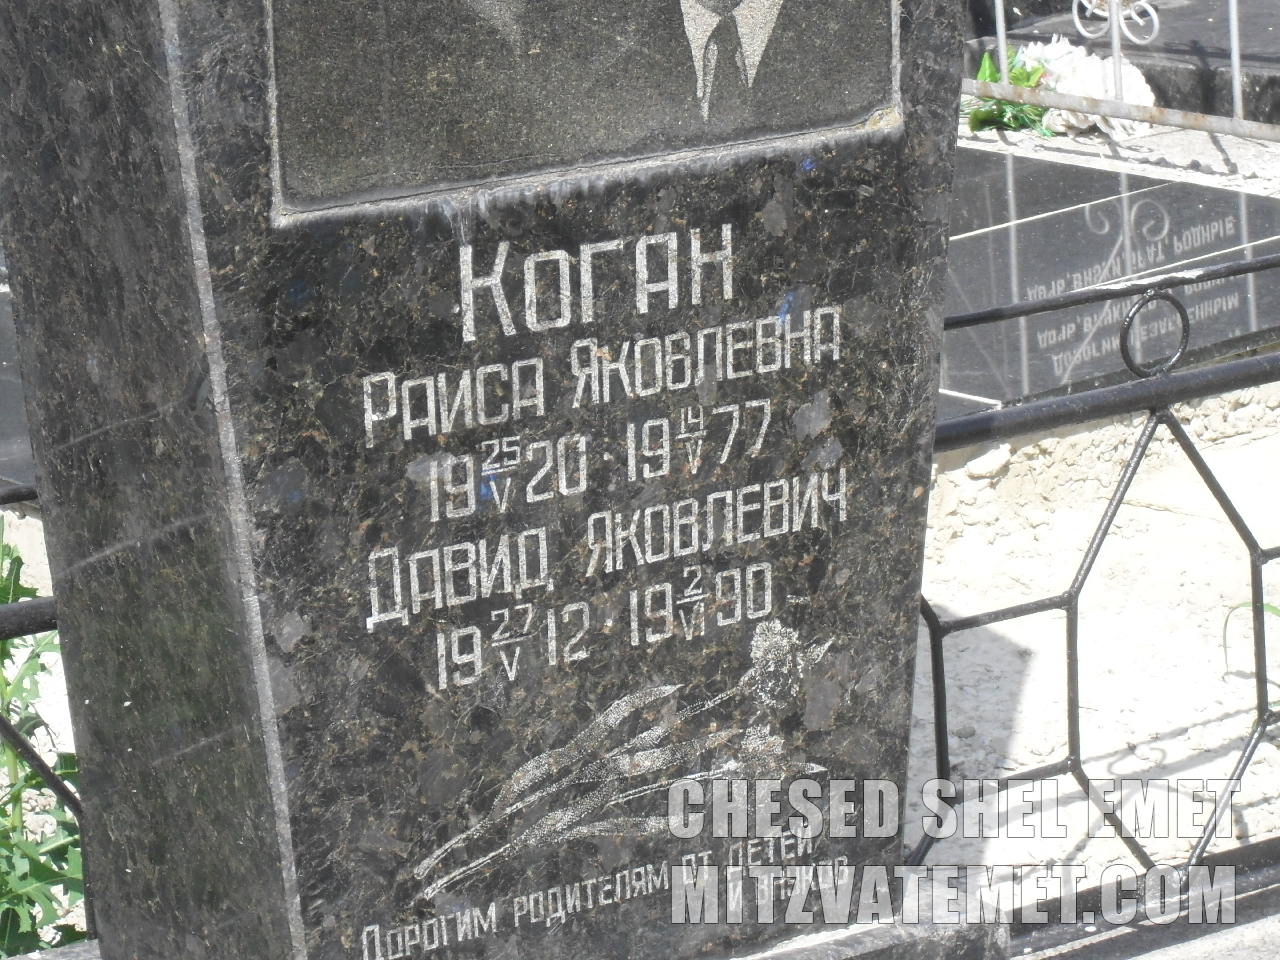 Kogan David Yakovlevich 1912-1990